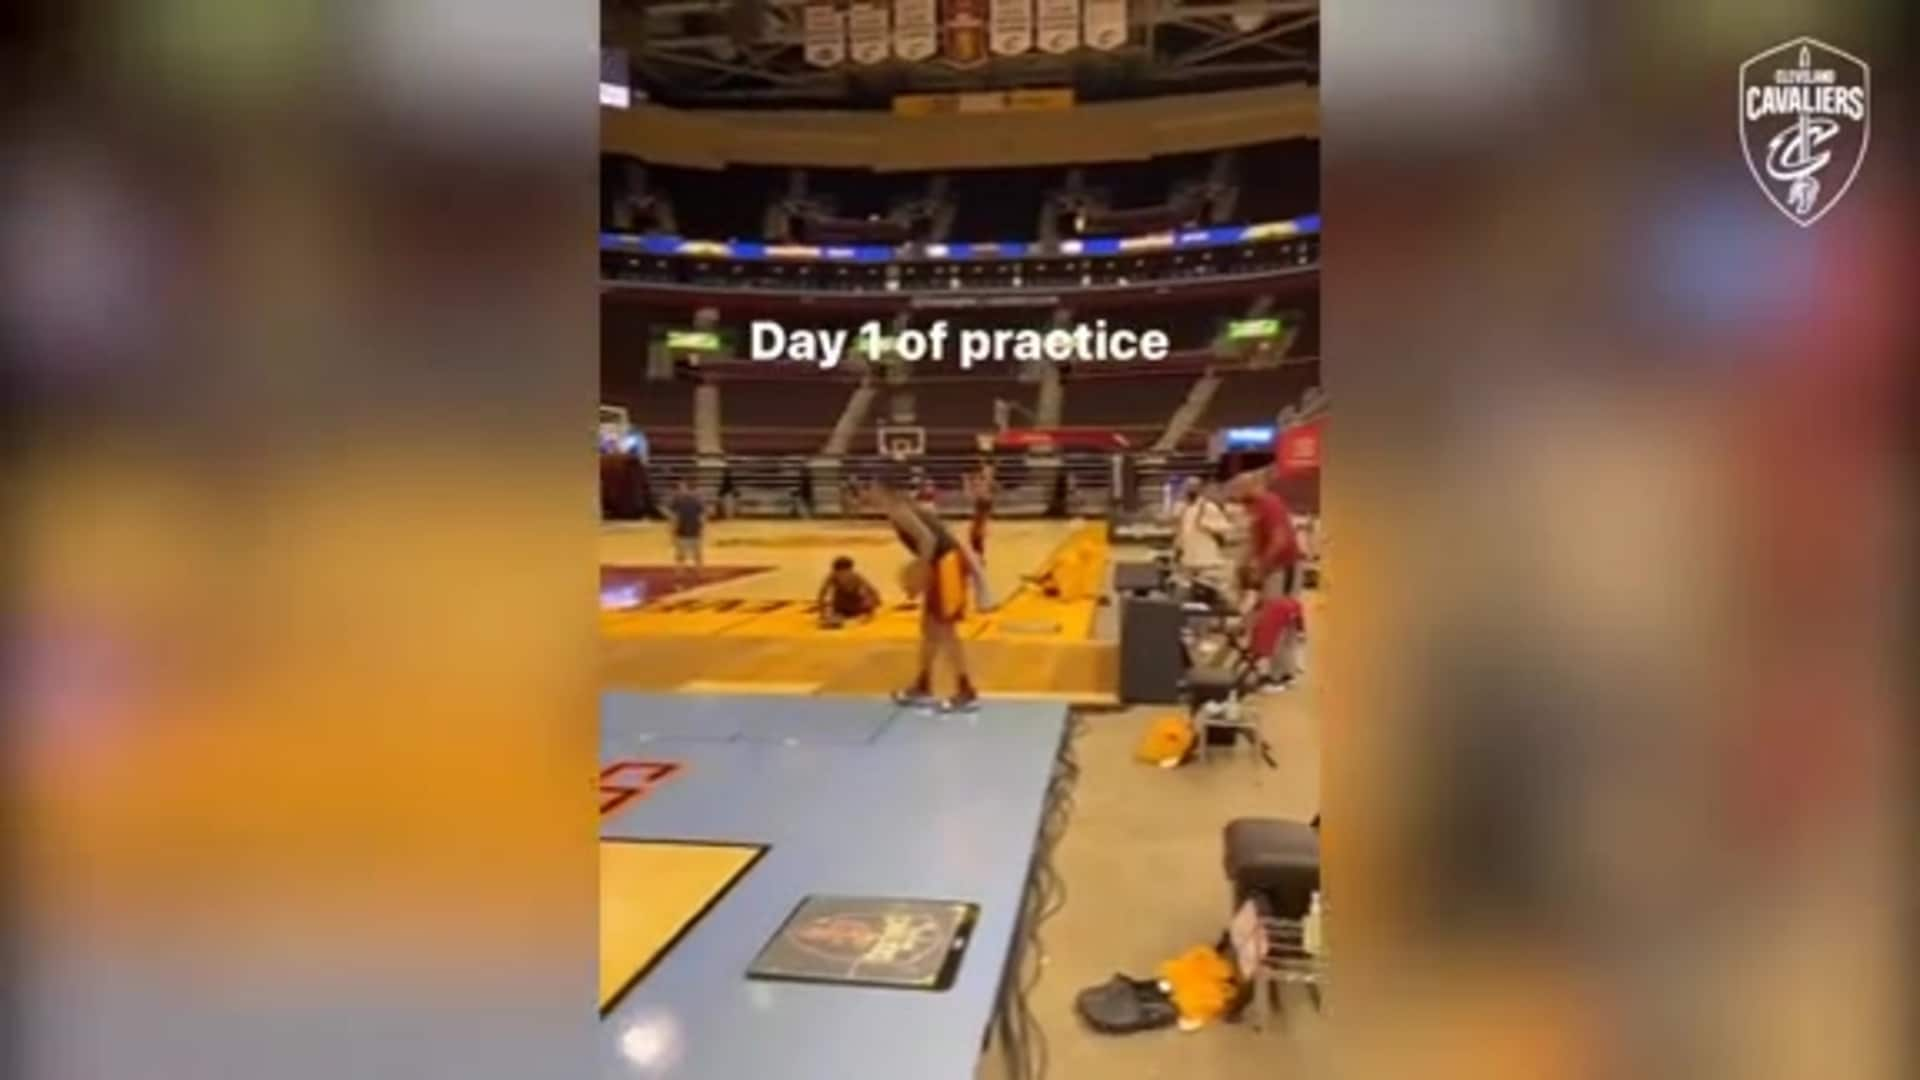 A Look Inside At the Practice Setup